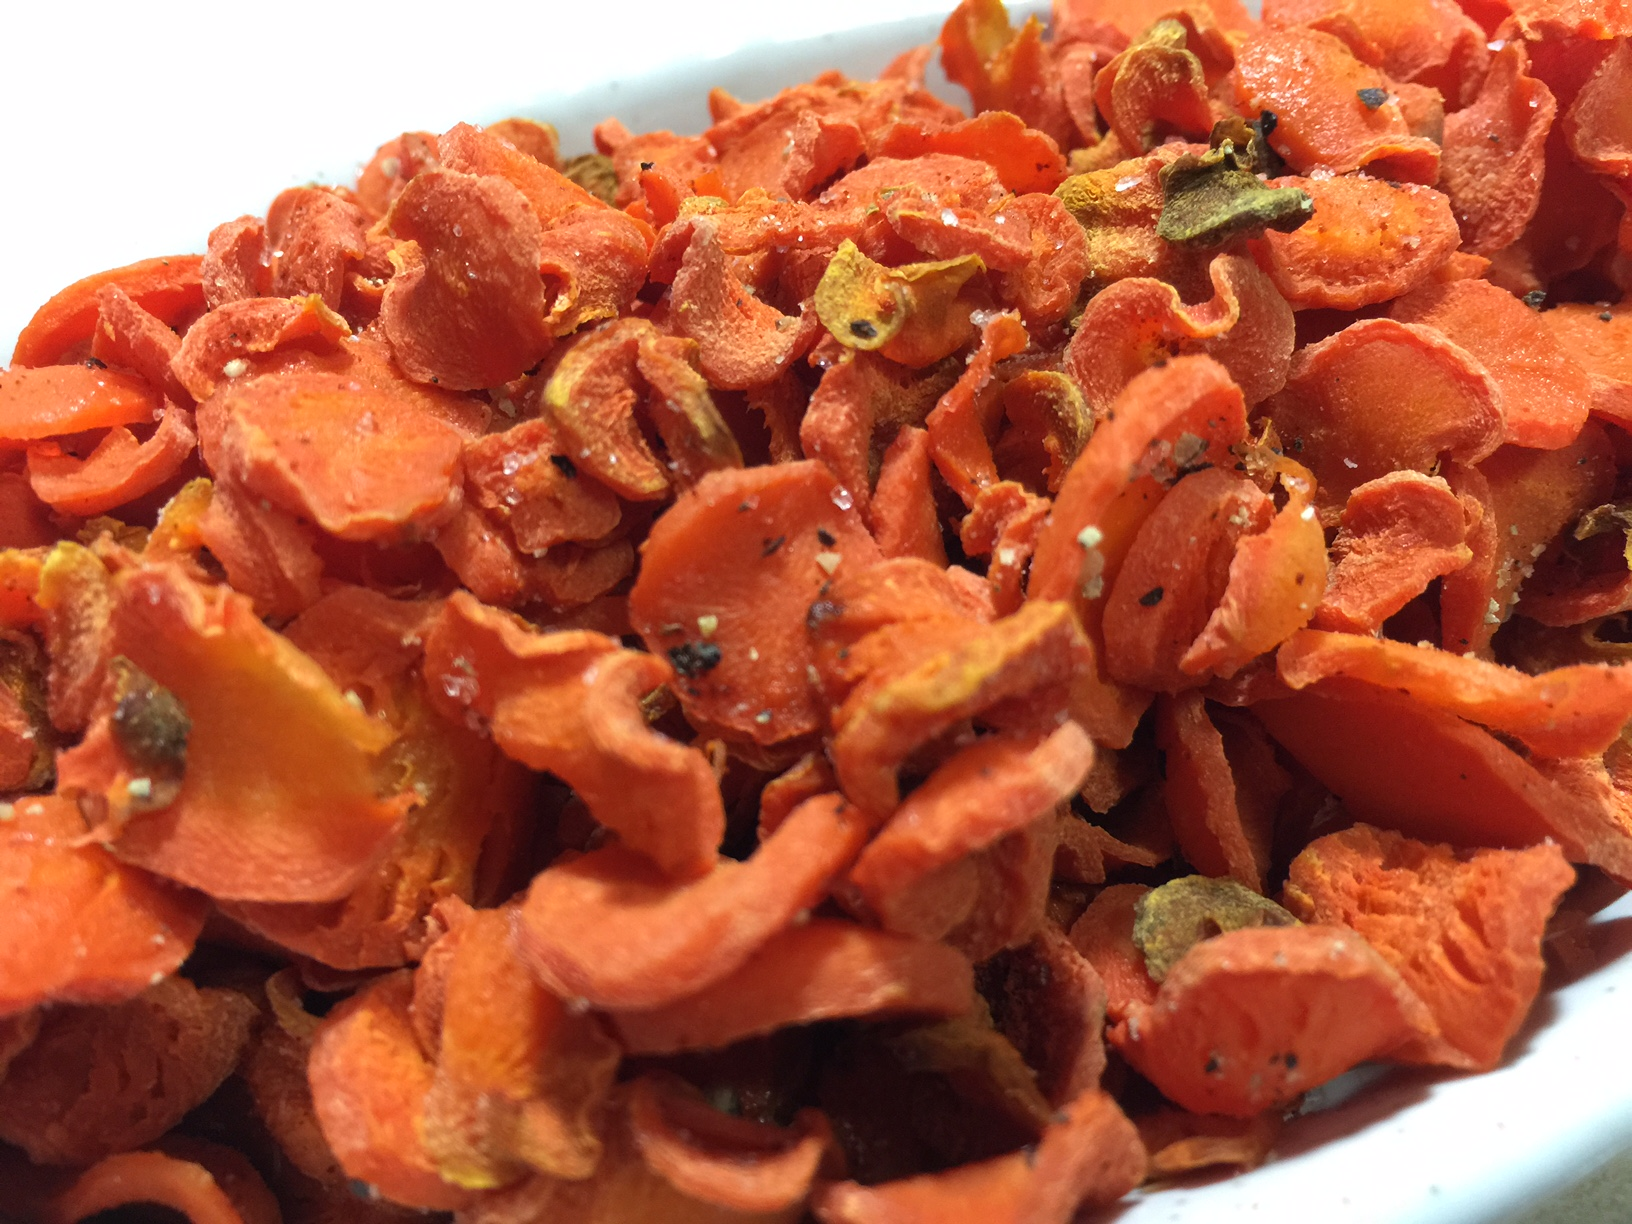 ROASTED CARROT SNACK 6